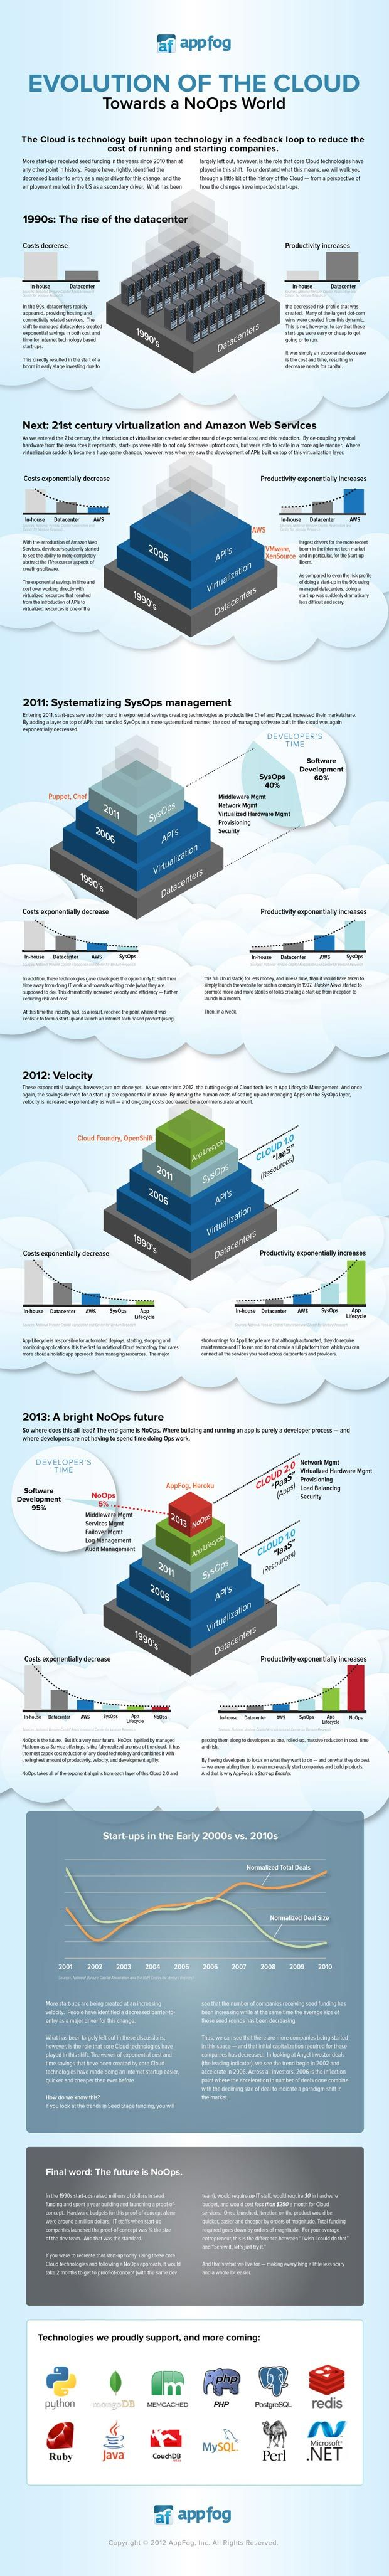 Evolution of the #Cloud Towards a NoOps World [Infographic]